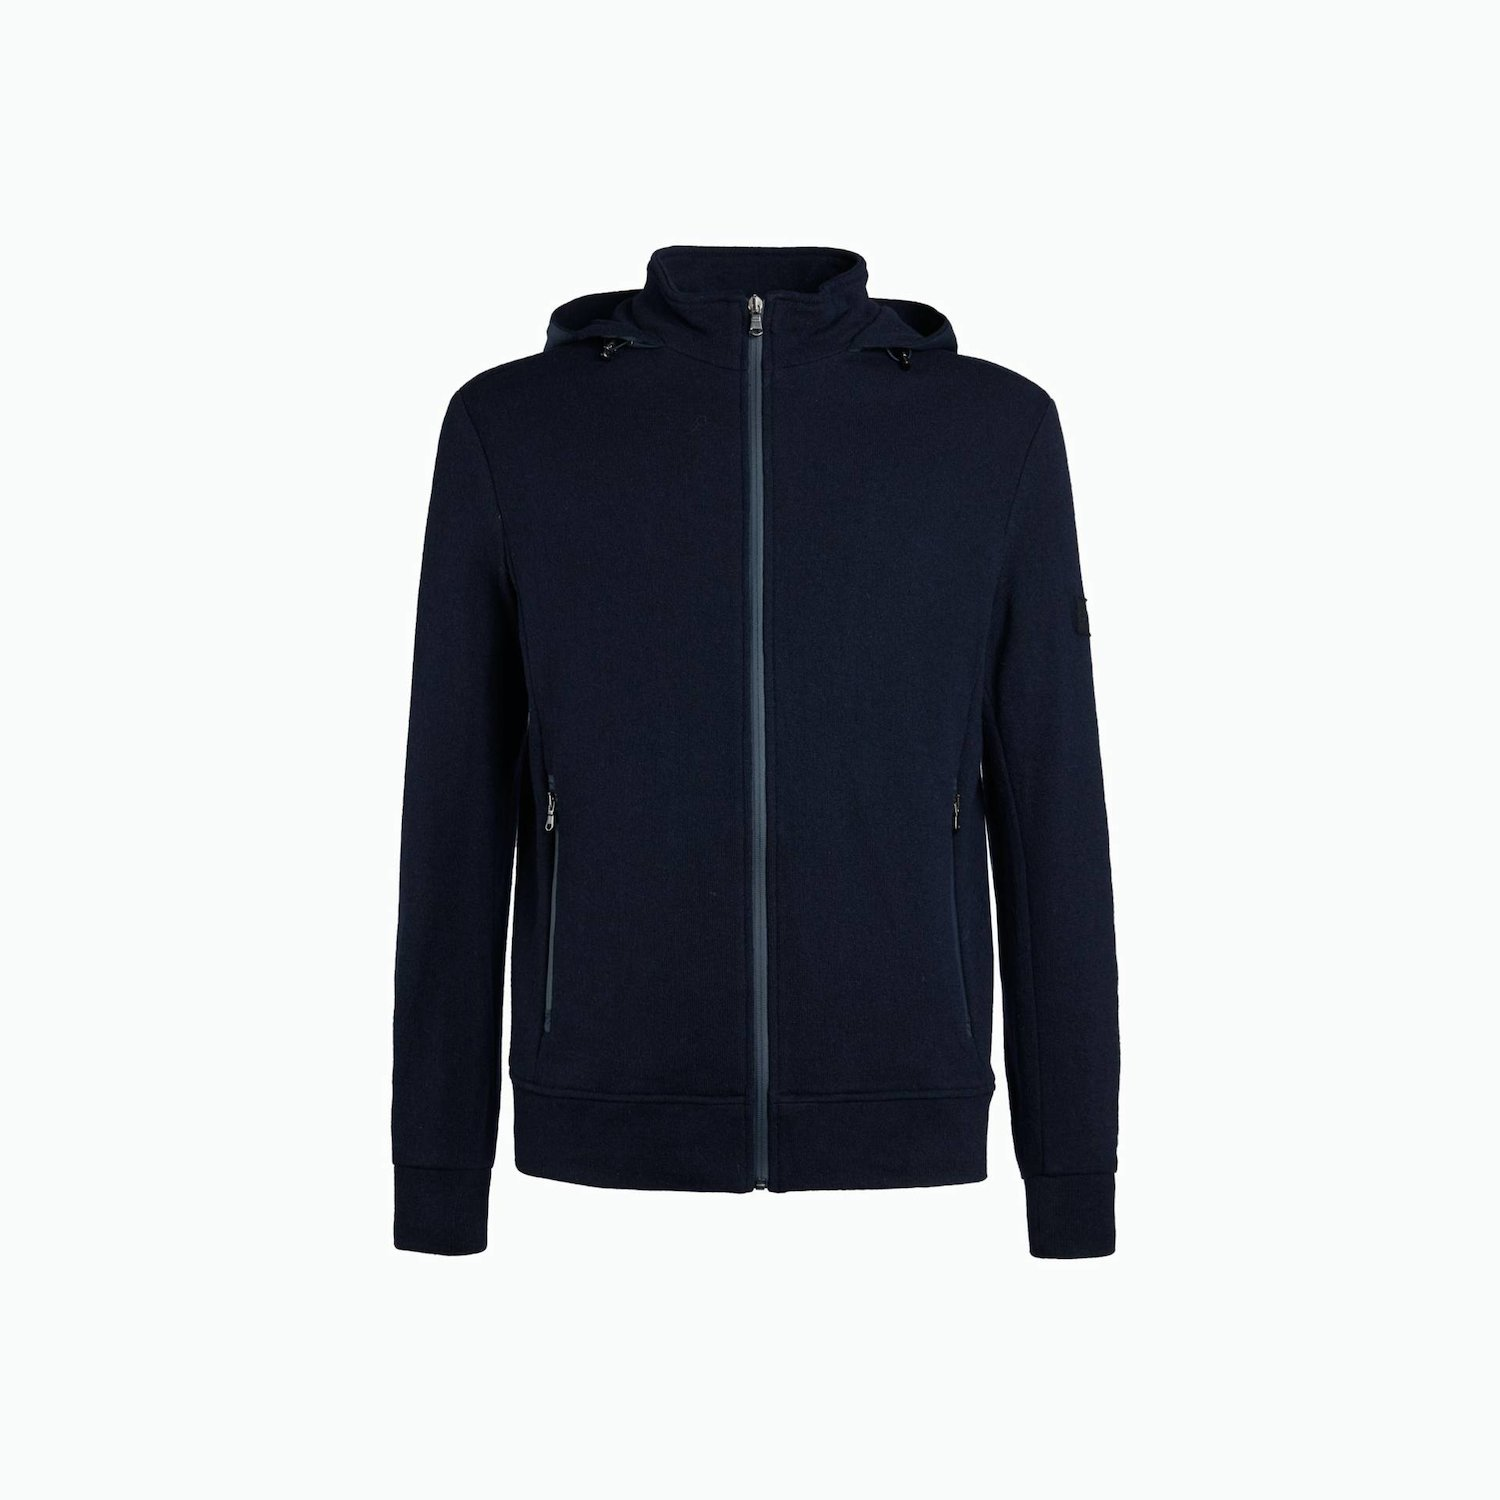 Buxton jacket - Navy